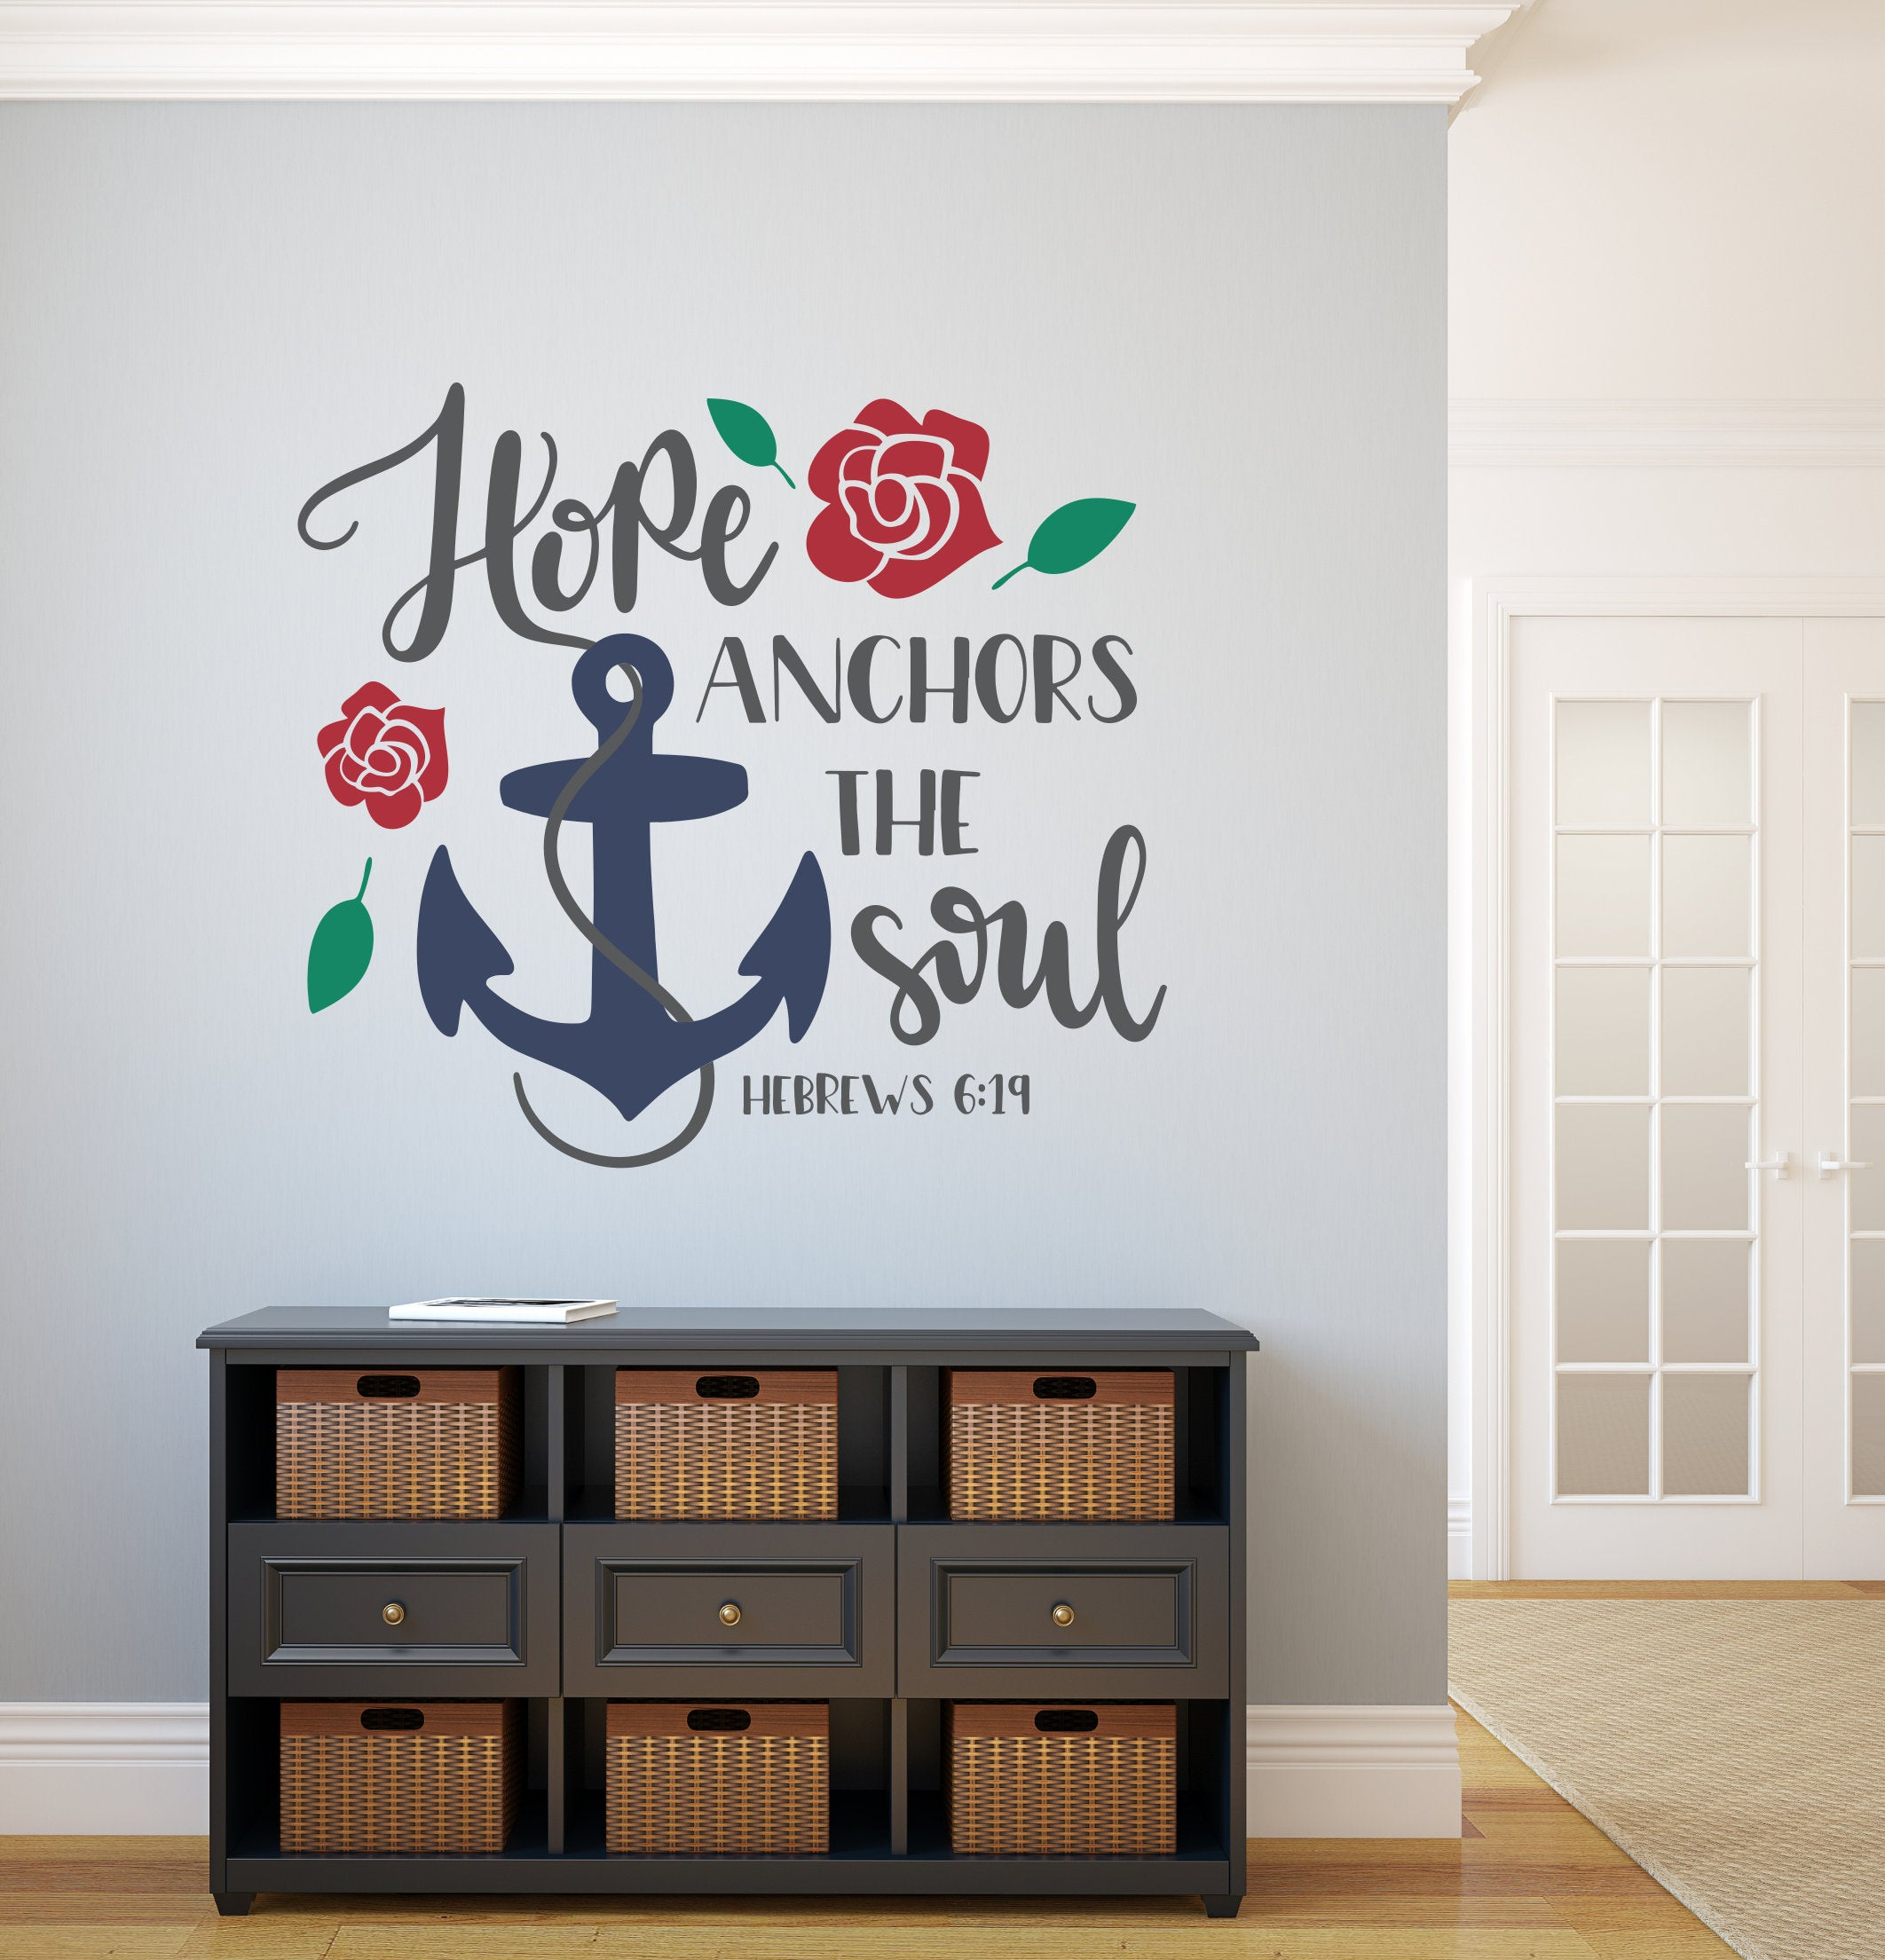 Hope Anchors The Soul, Christian Wall Decal, Hebrews 6 19 Intended For Faith, Hope, Love Raised Sign Wall Decor (View 8 of 30)